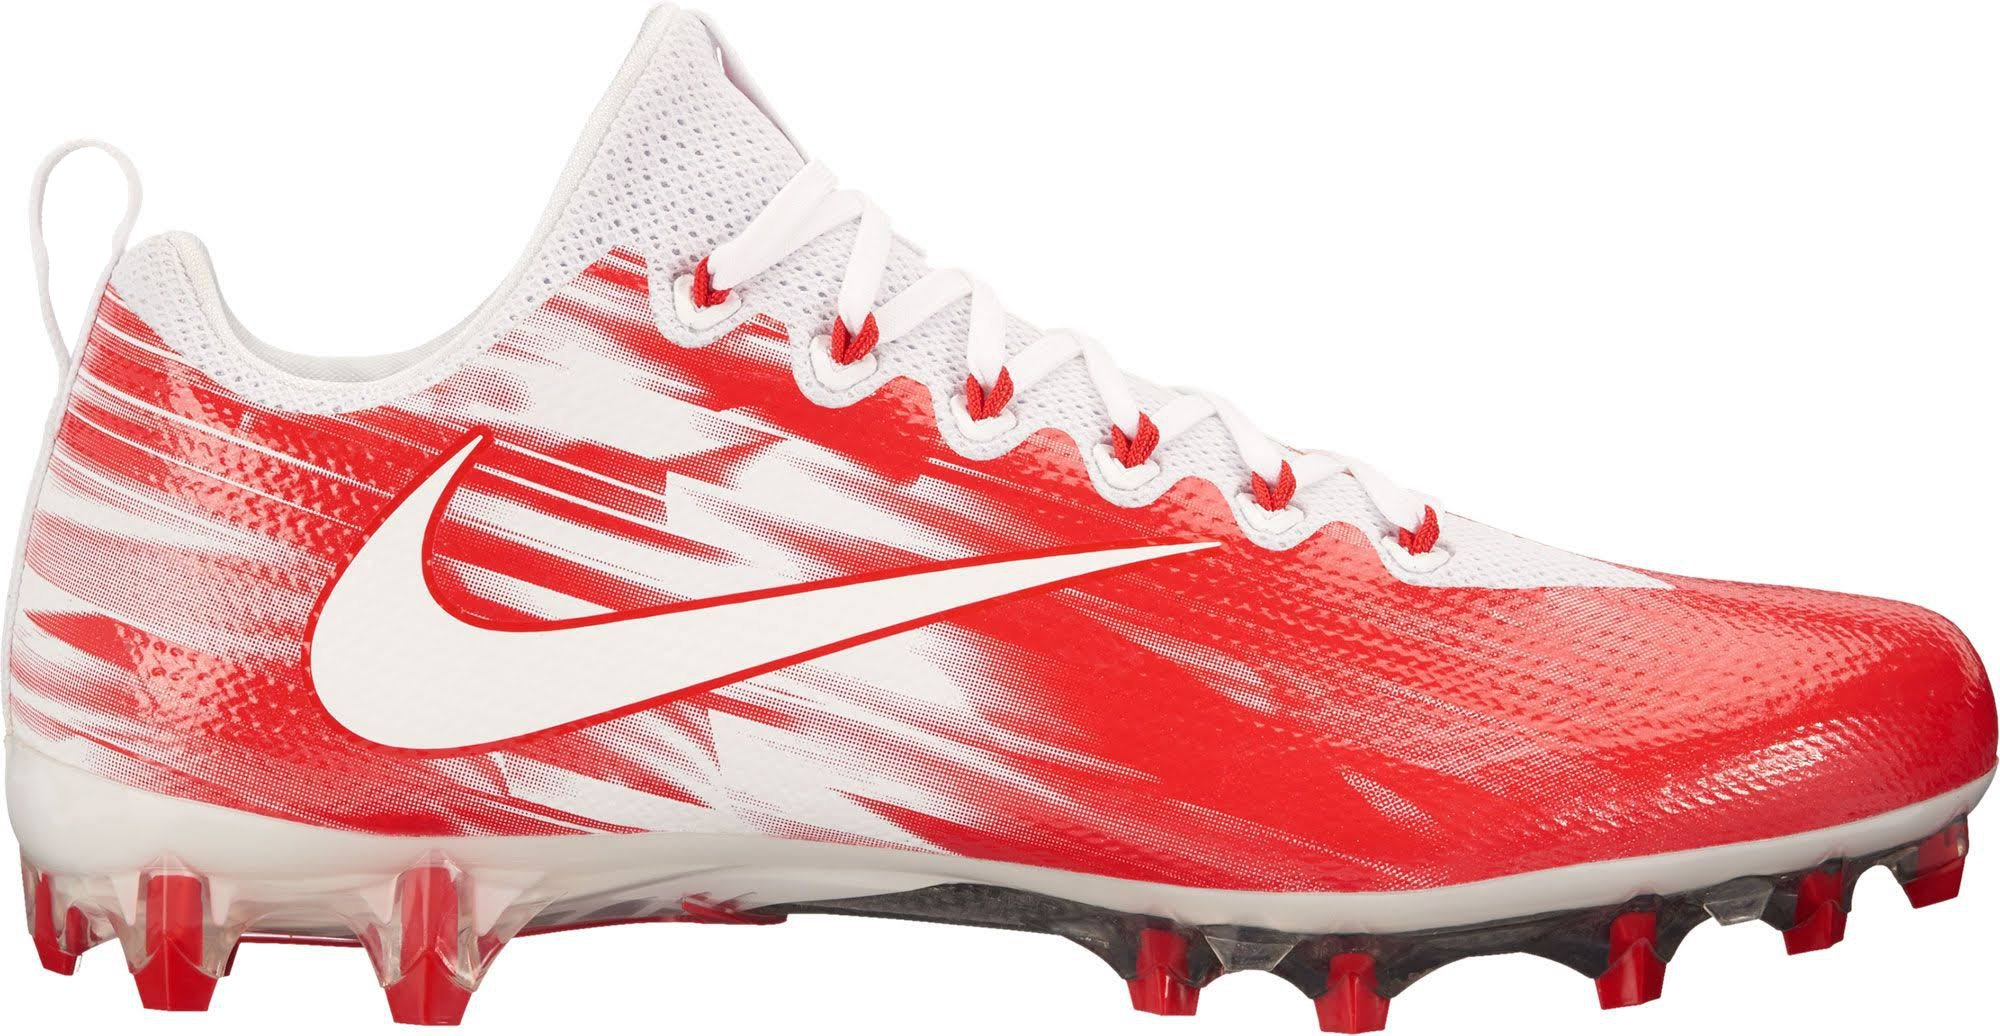 NIKE Men's Vapor Untouchable Pro Lacrosse Cleats (10, White/Red) by NIKE